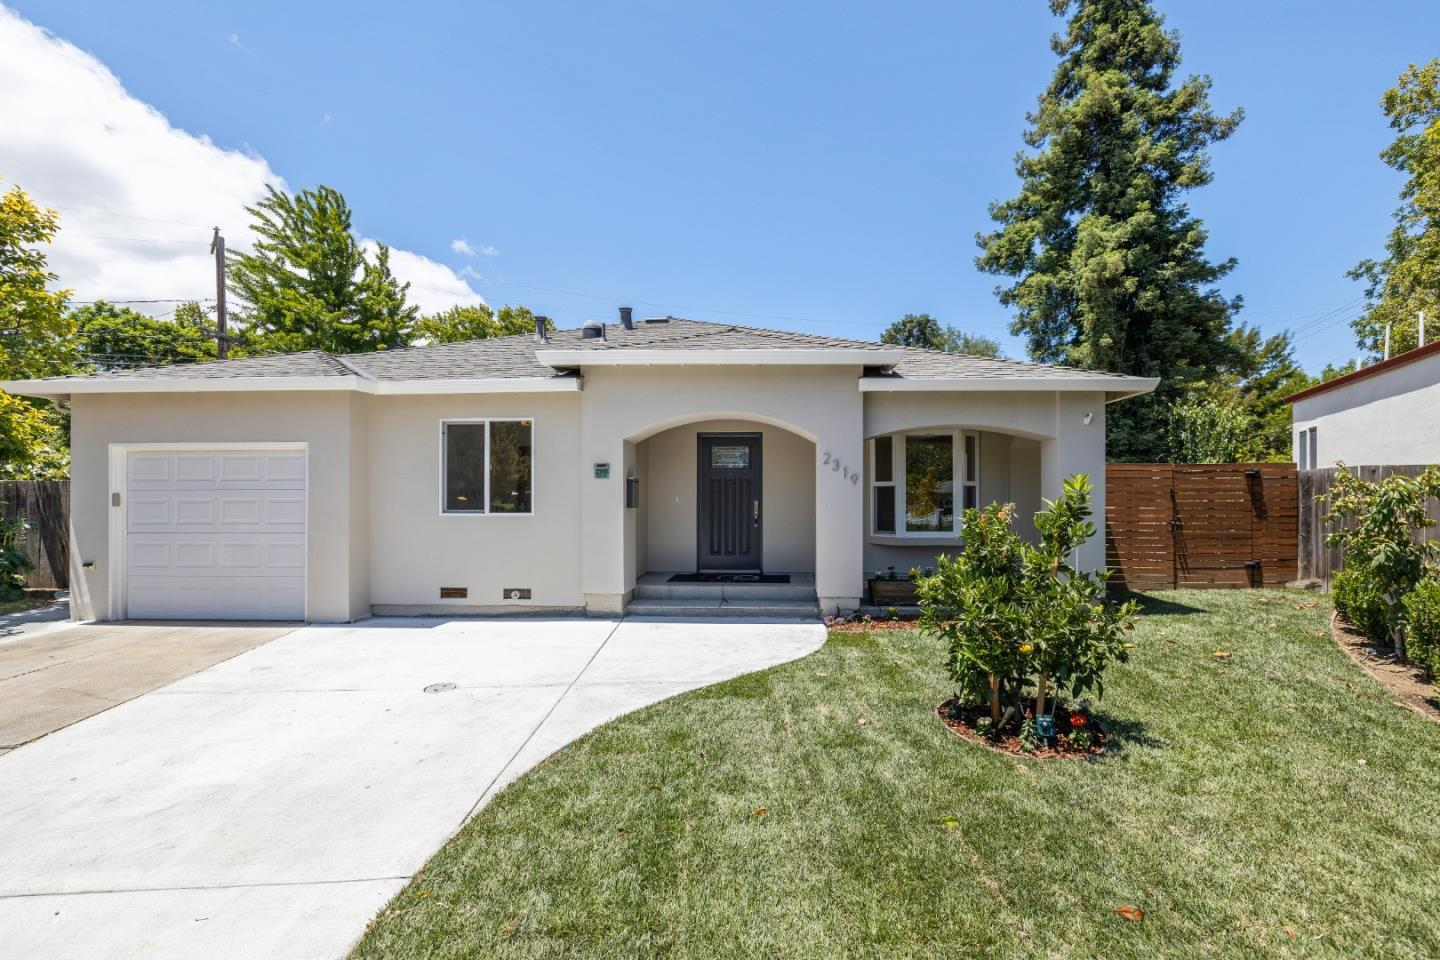 Detail Gallery Image 1 of 49 For 2319 Sierra Ct, Palo Alto,  CA 94303 - 4 Beds   4 Baths